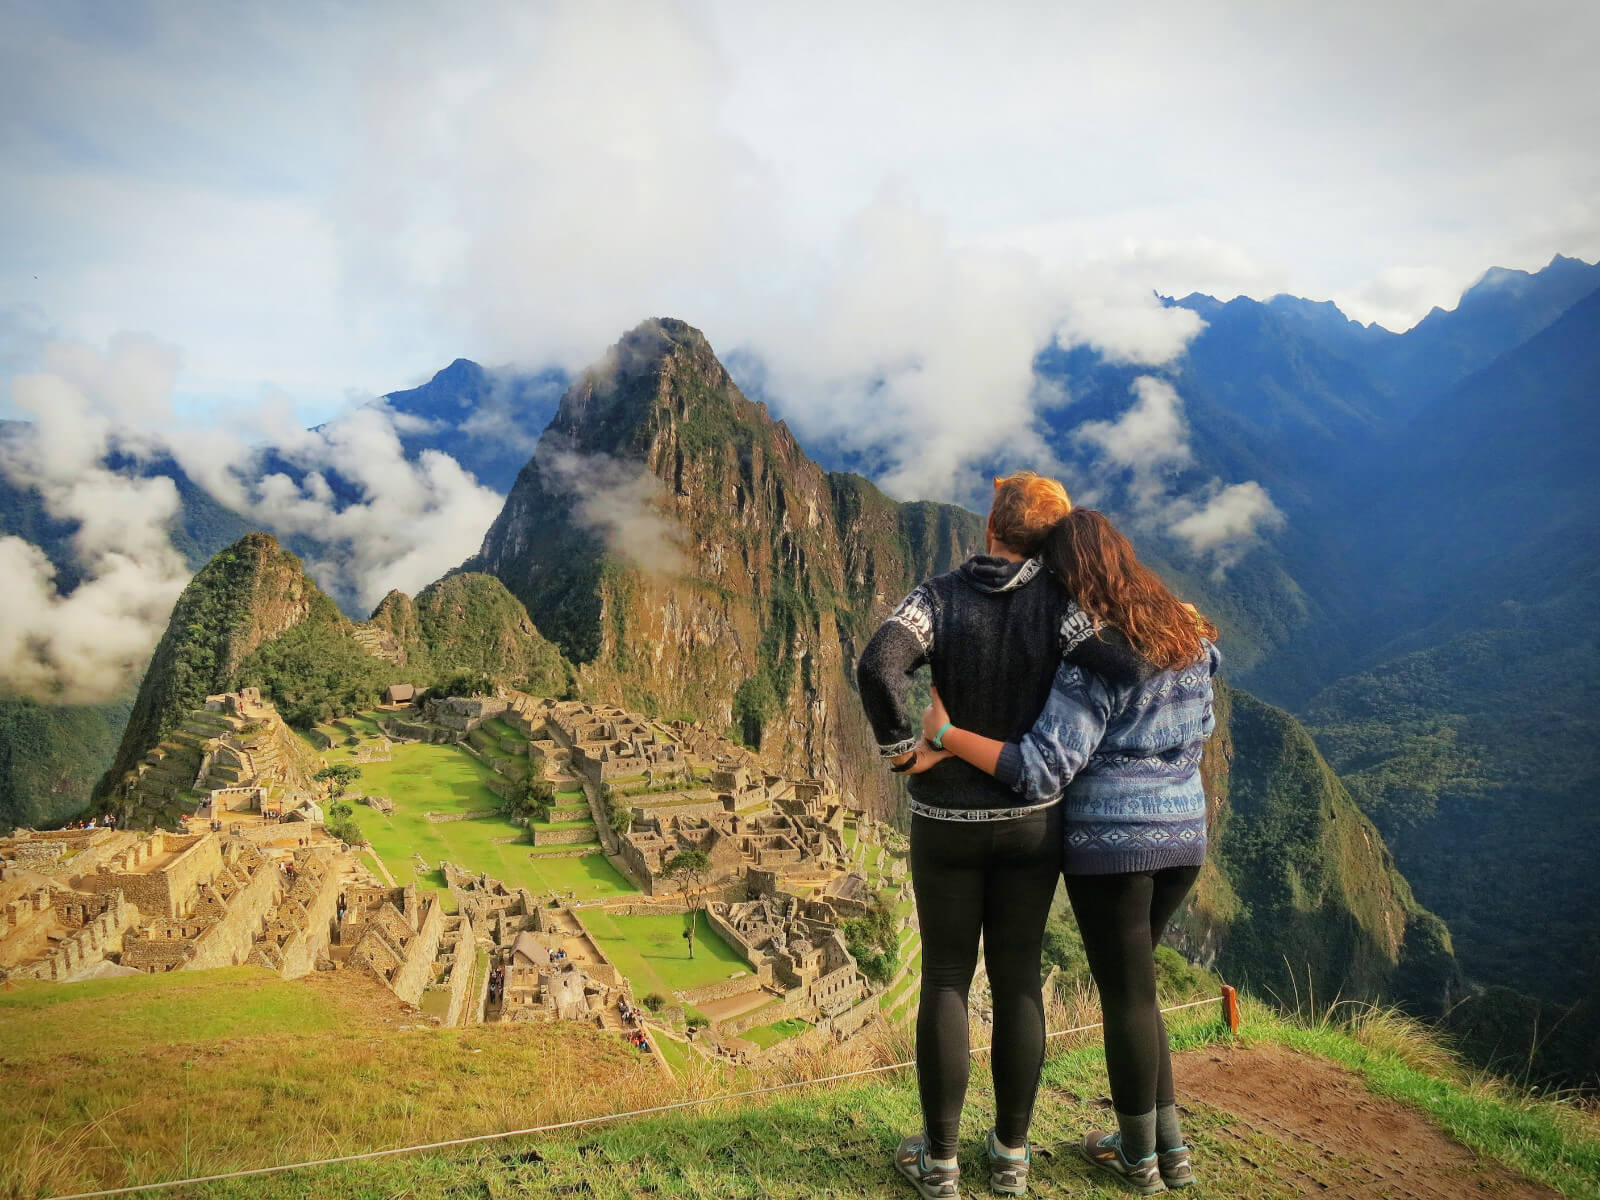 Couple overlooking Machu Picchu, Peru